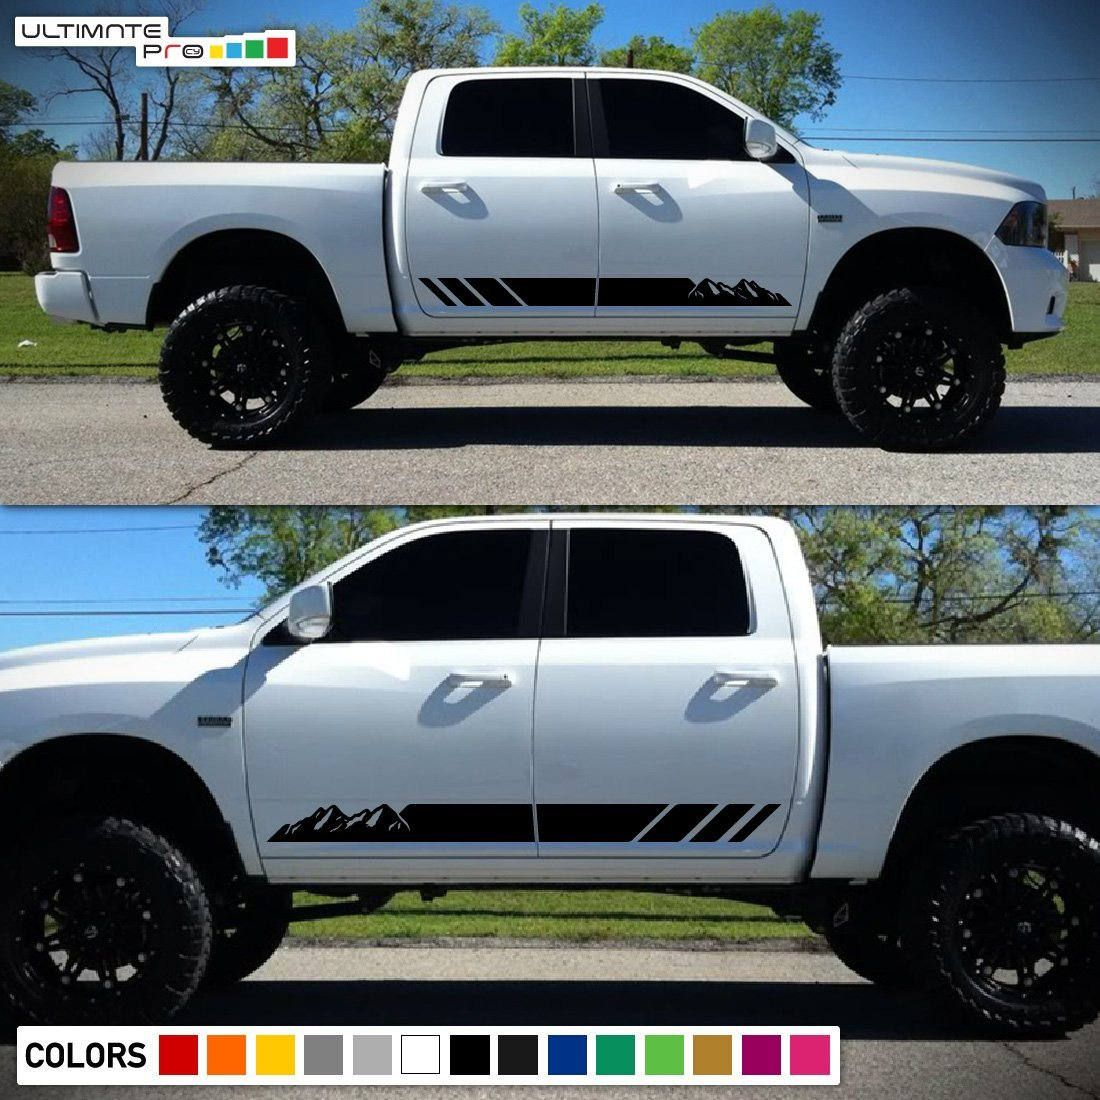 2x Decal Sticker Graphic Side Mountain Stripes Compatible With Diesel Trucks Dodge Ram Trucks